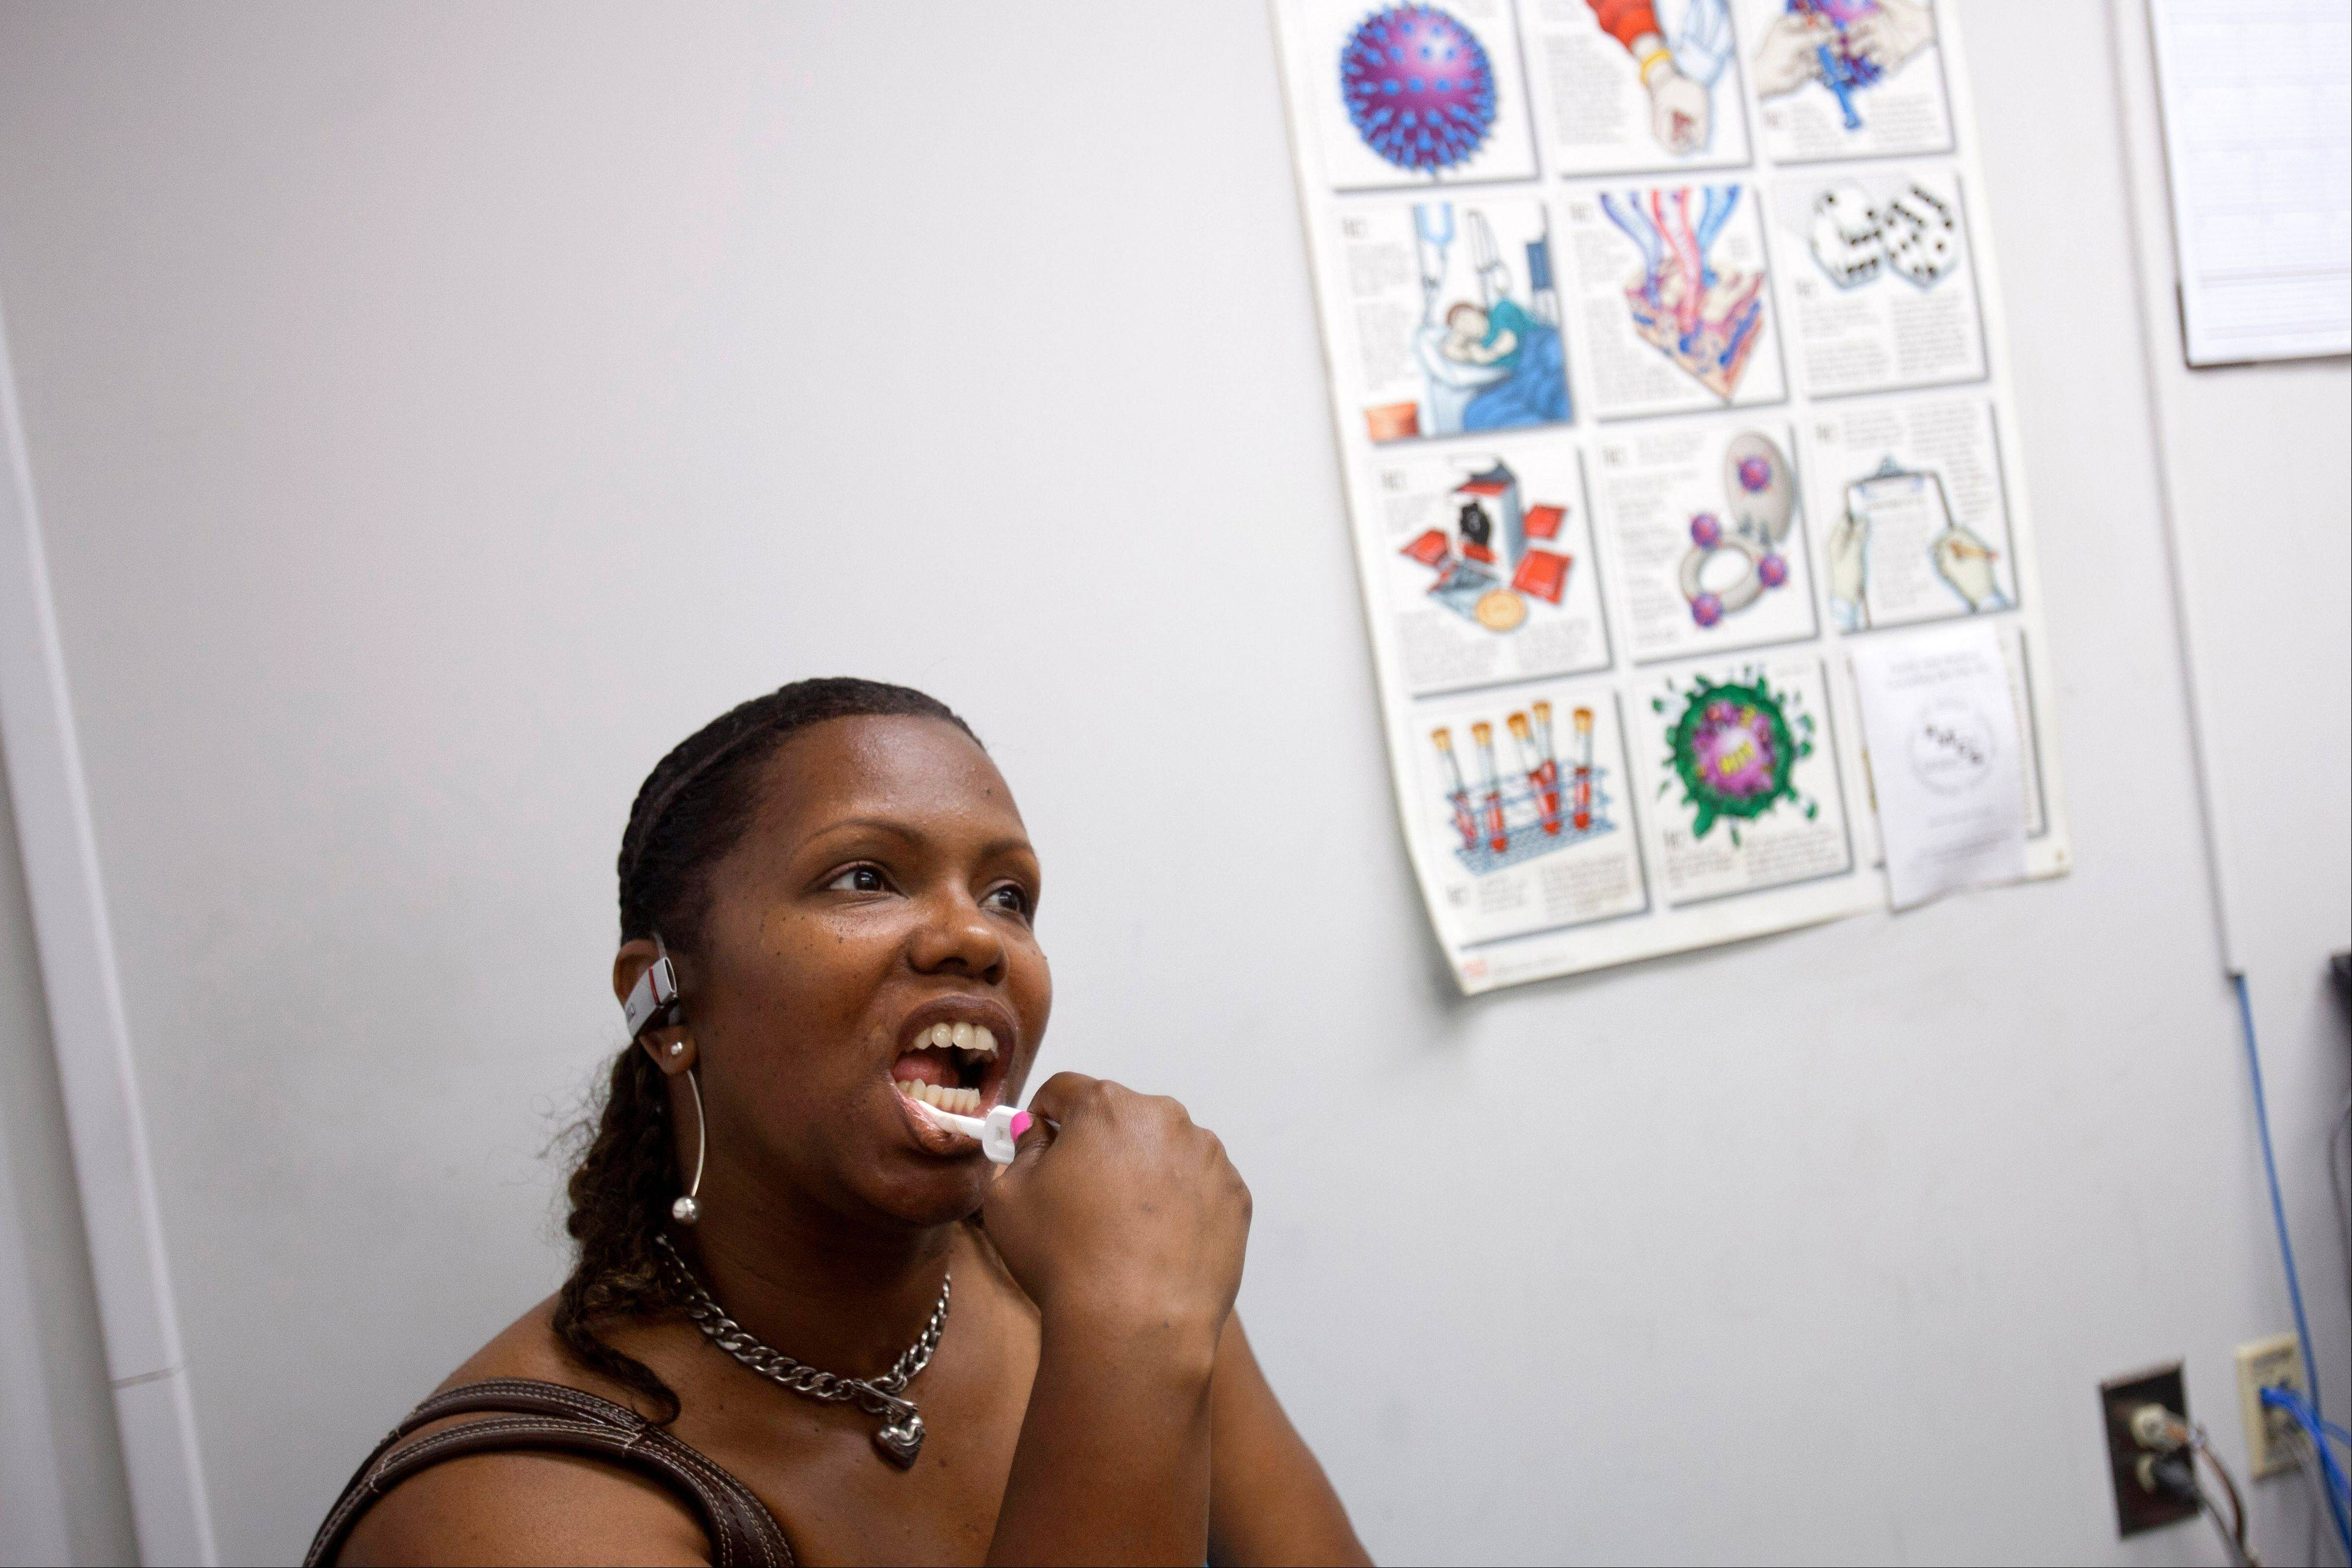 Robin Reese, 41, of Washington, D.C., uses an oral test for HIV, in front of a poster detailing facts about HIV/AIDS, inside the HIV Testing Room at the Penn Branch of the District of Columbia Department of Motor Vehicles.